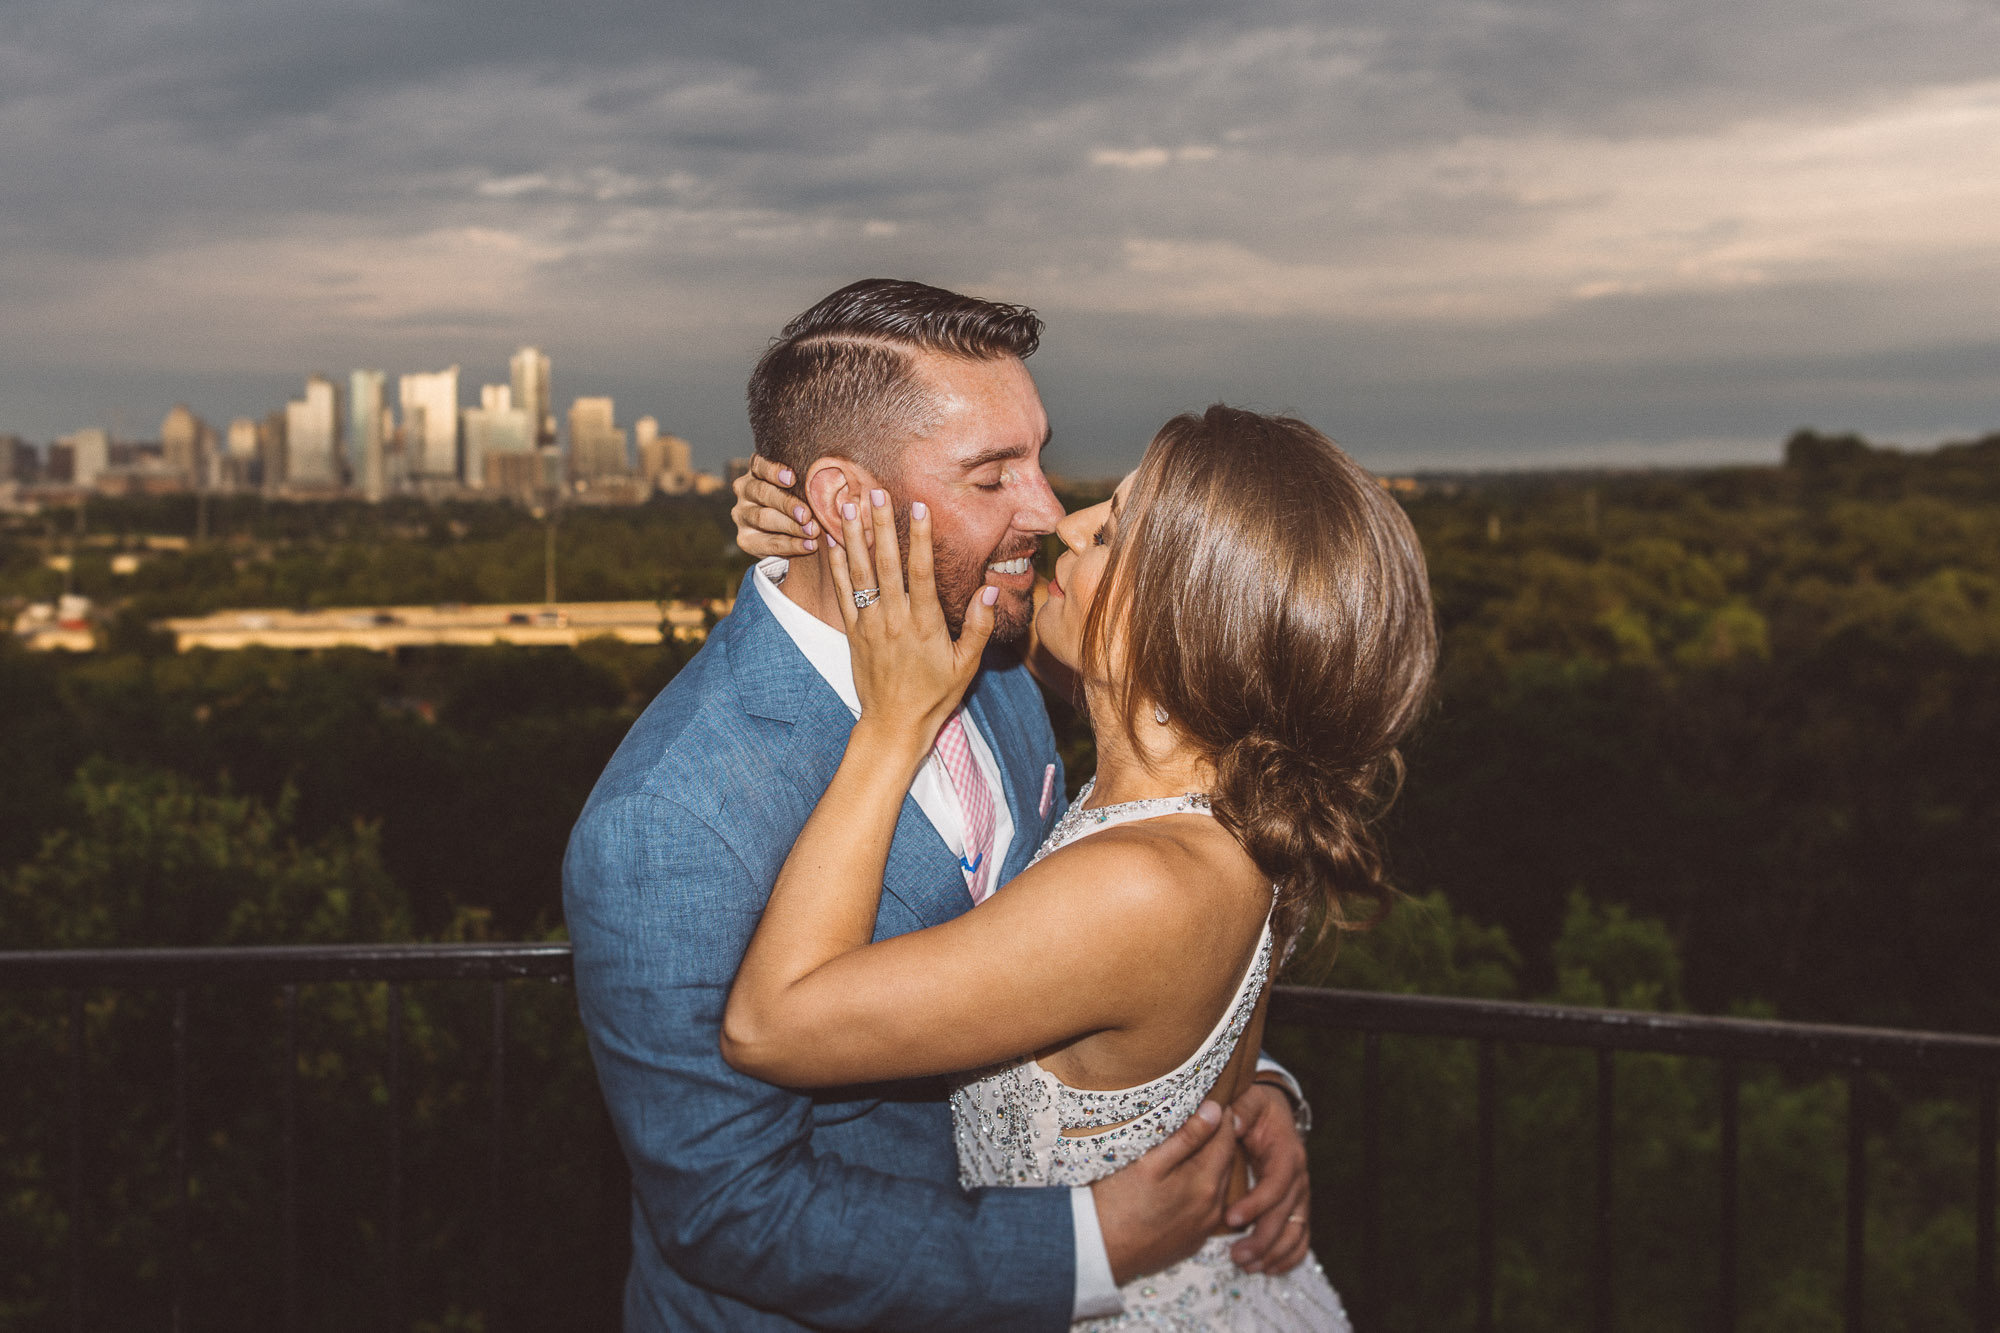 zilker park clubhouse austin texas wedding photographer portraits bride smiling groom happy joy pink tie blue suit dapper